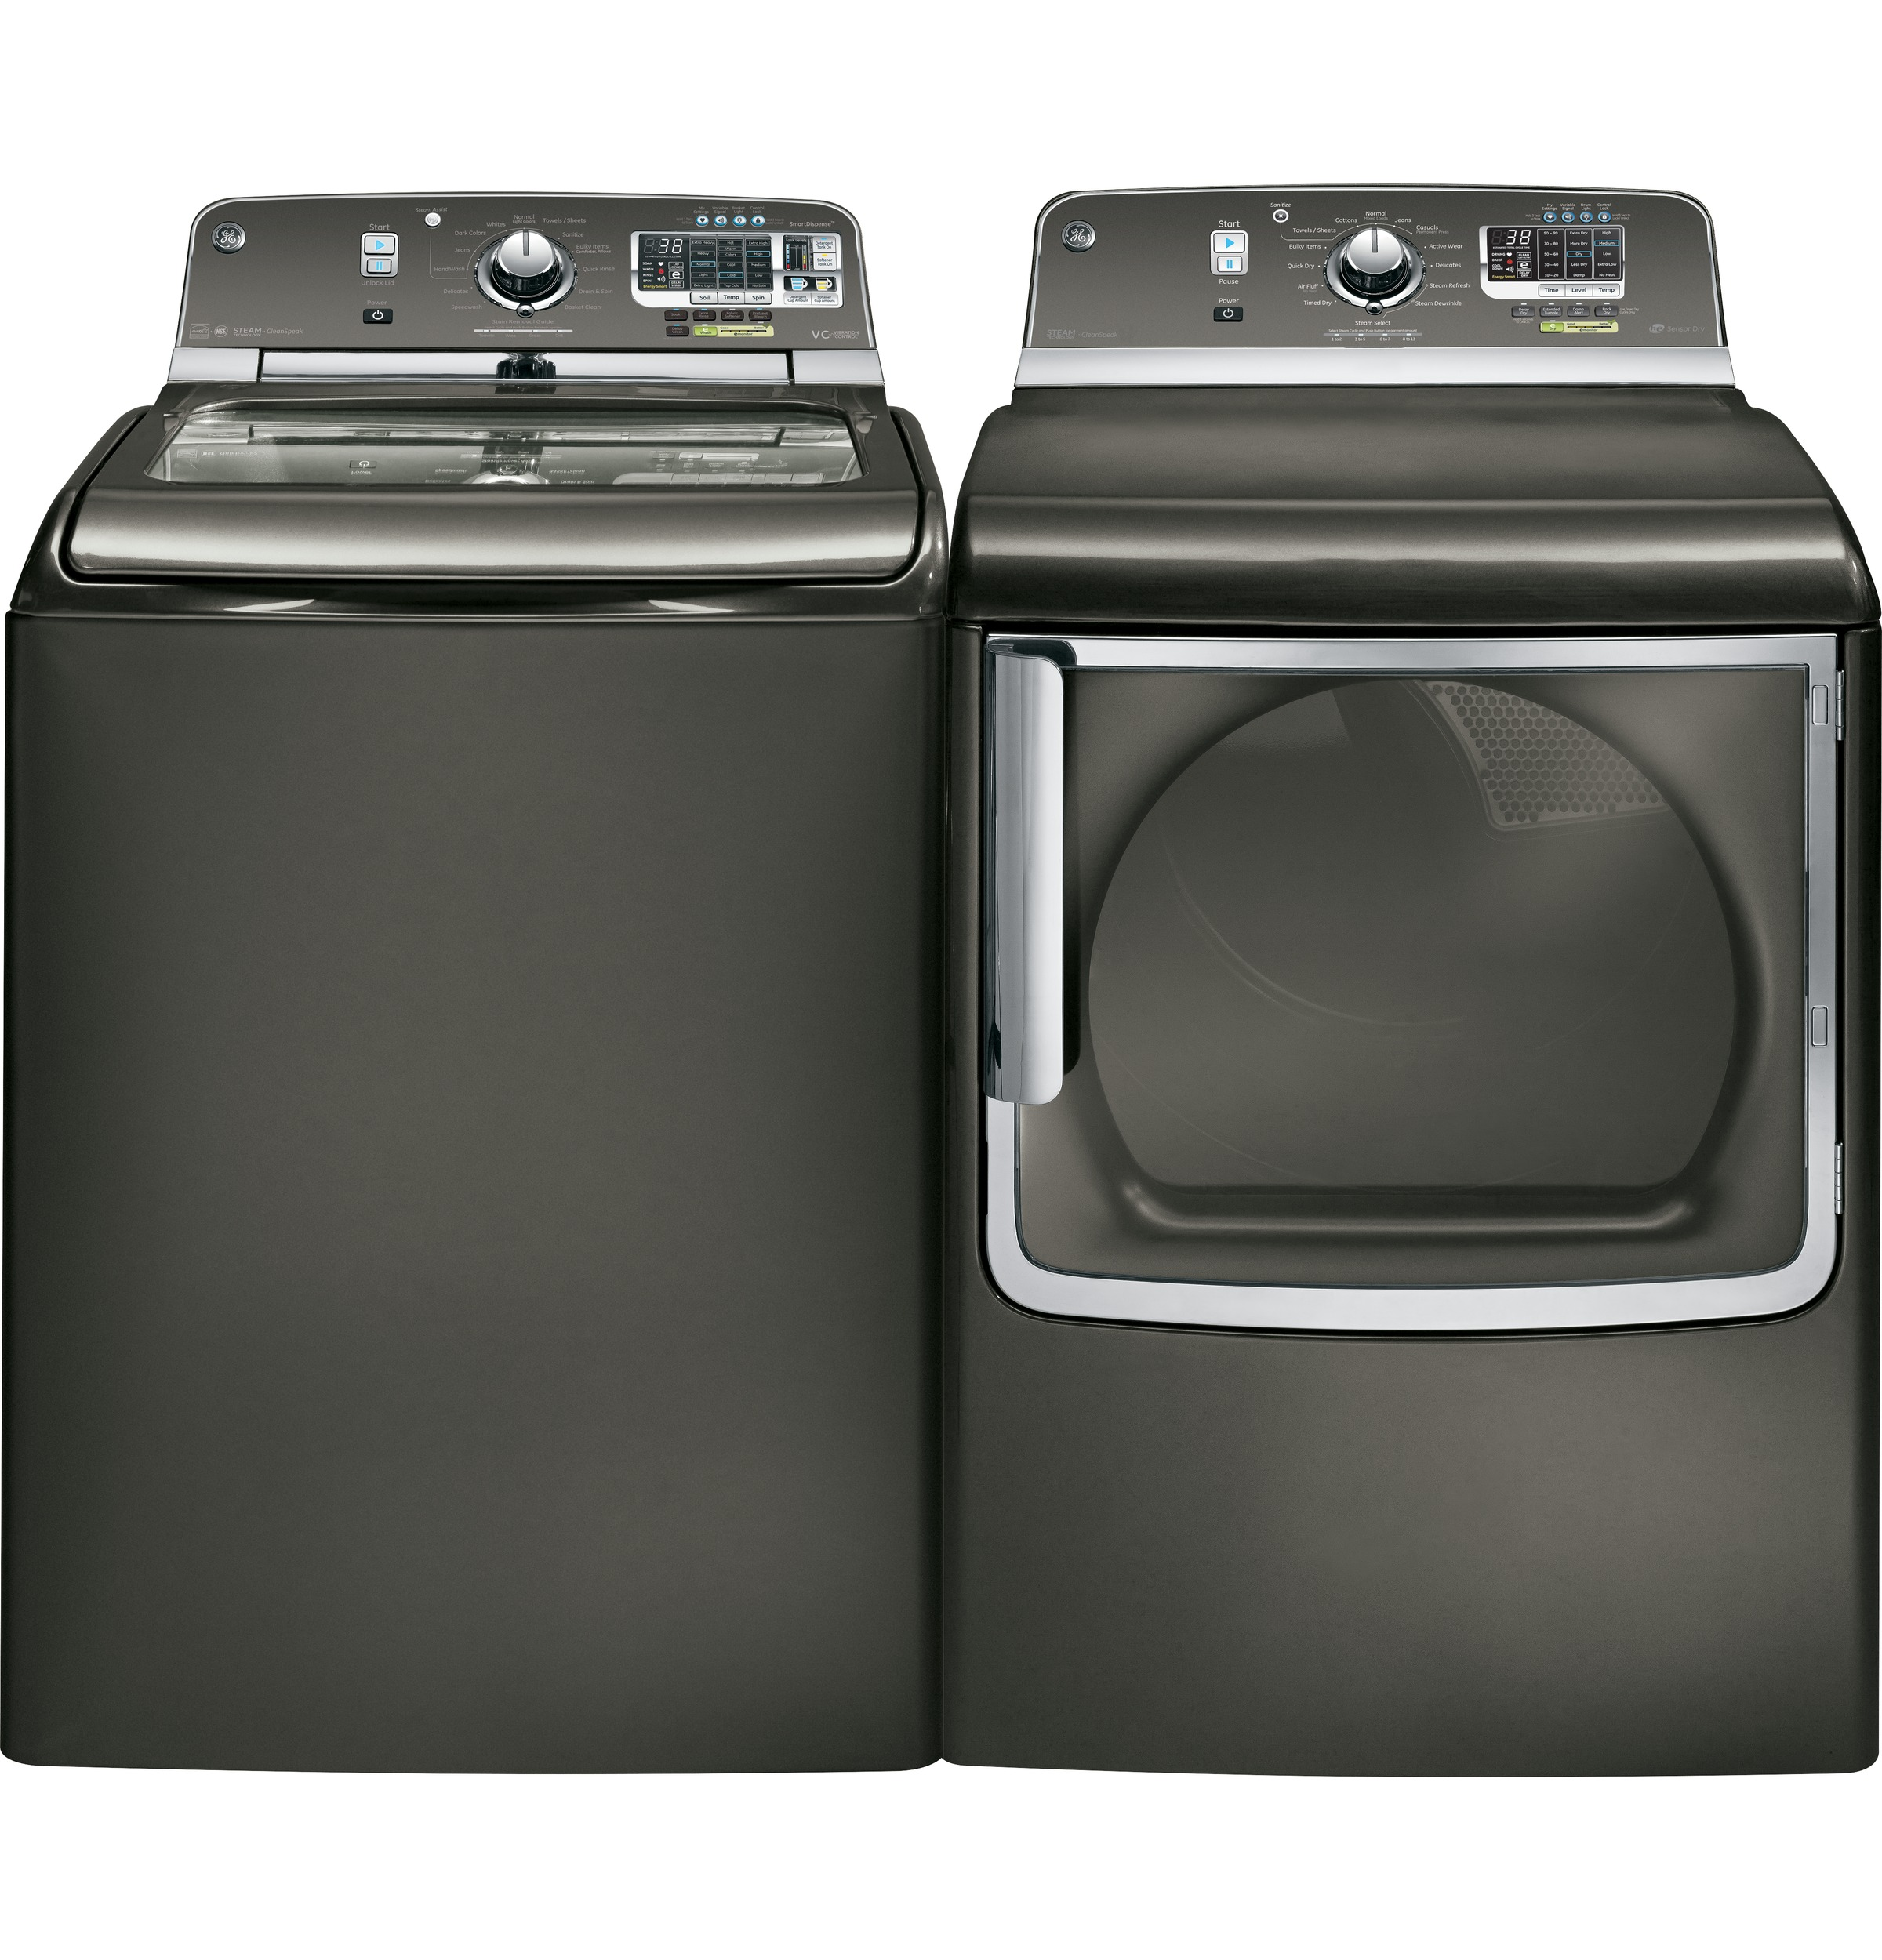 Harmony Washer And Dryer Gear 50 Doe Cu Ft Capacity Washer With Stainless Steel Basket